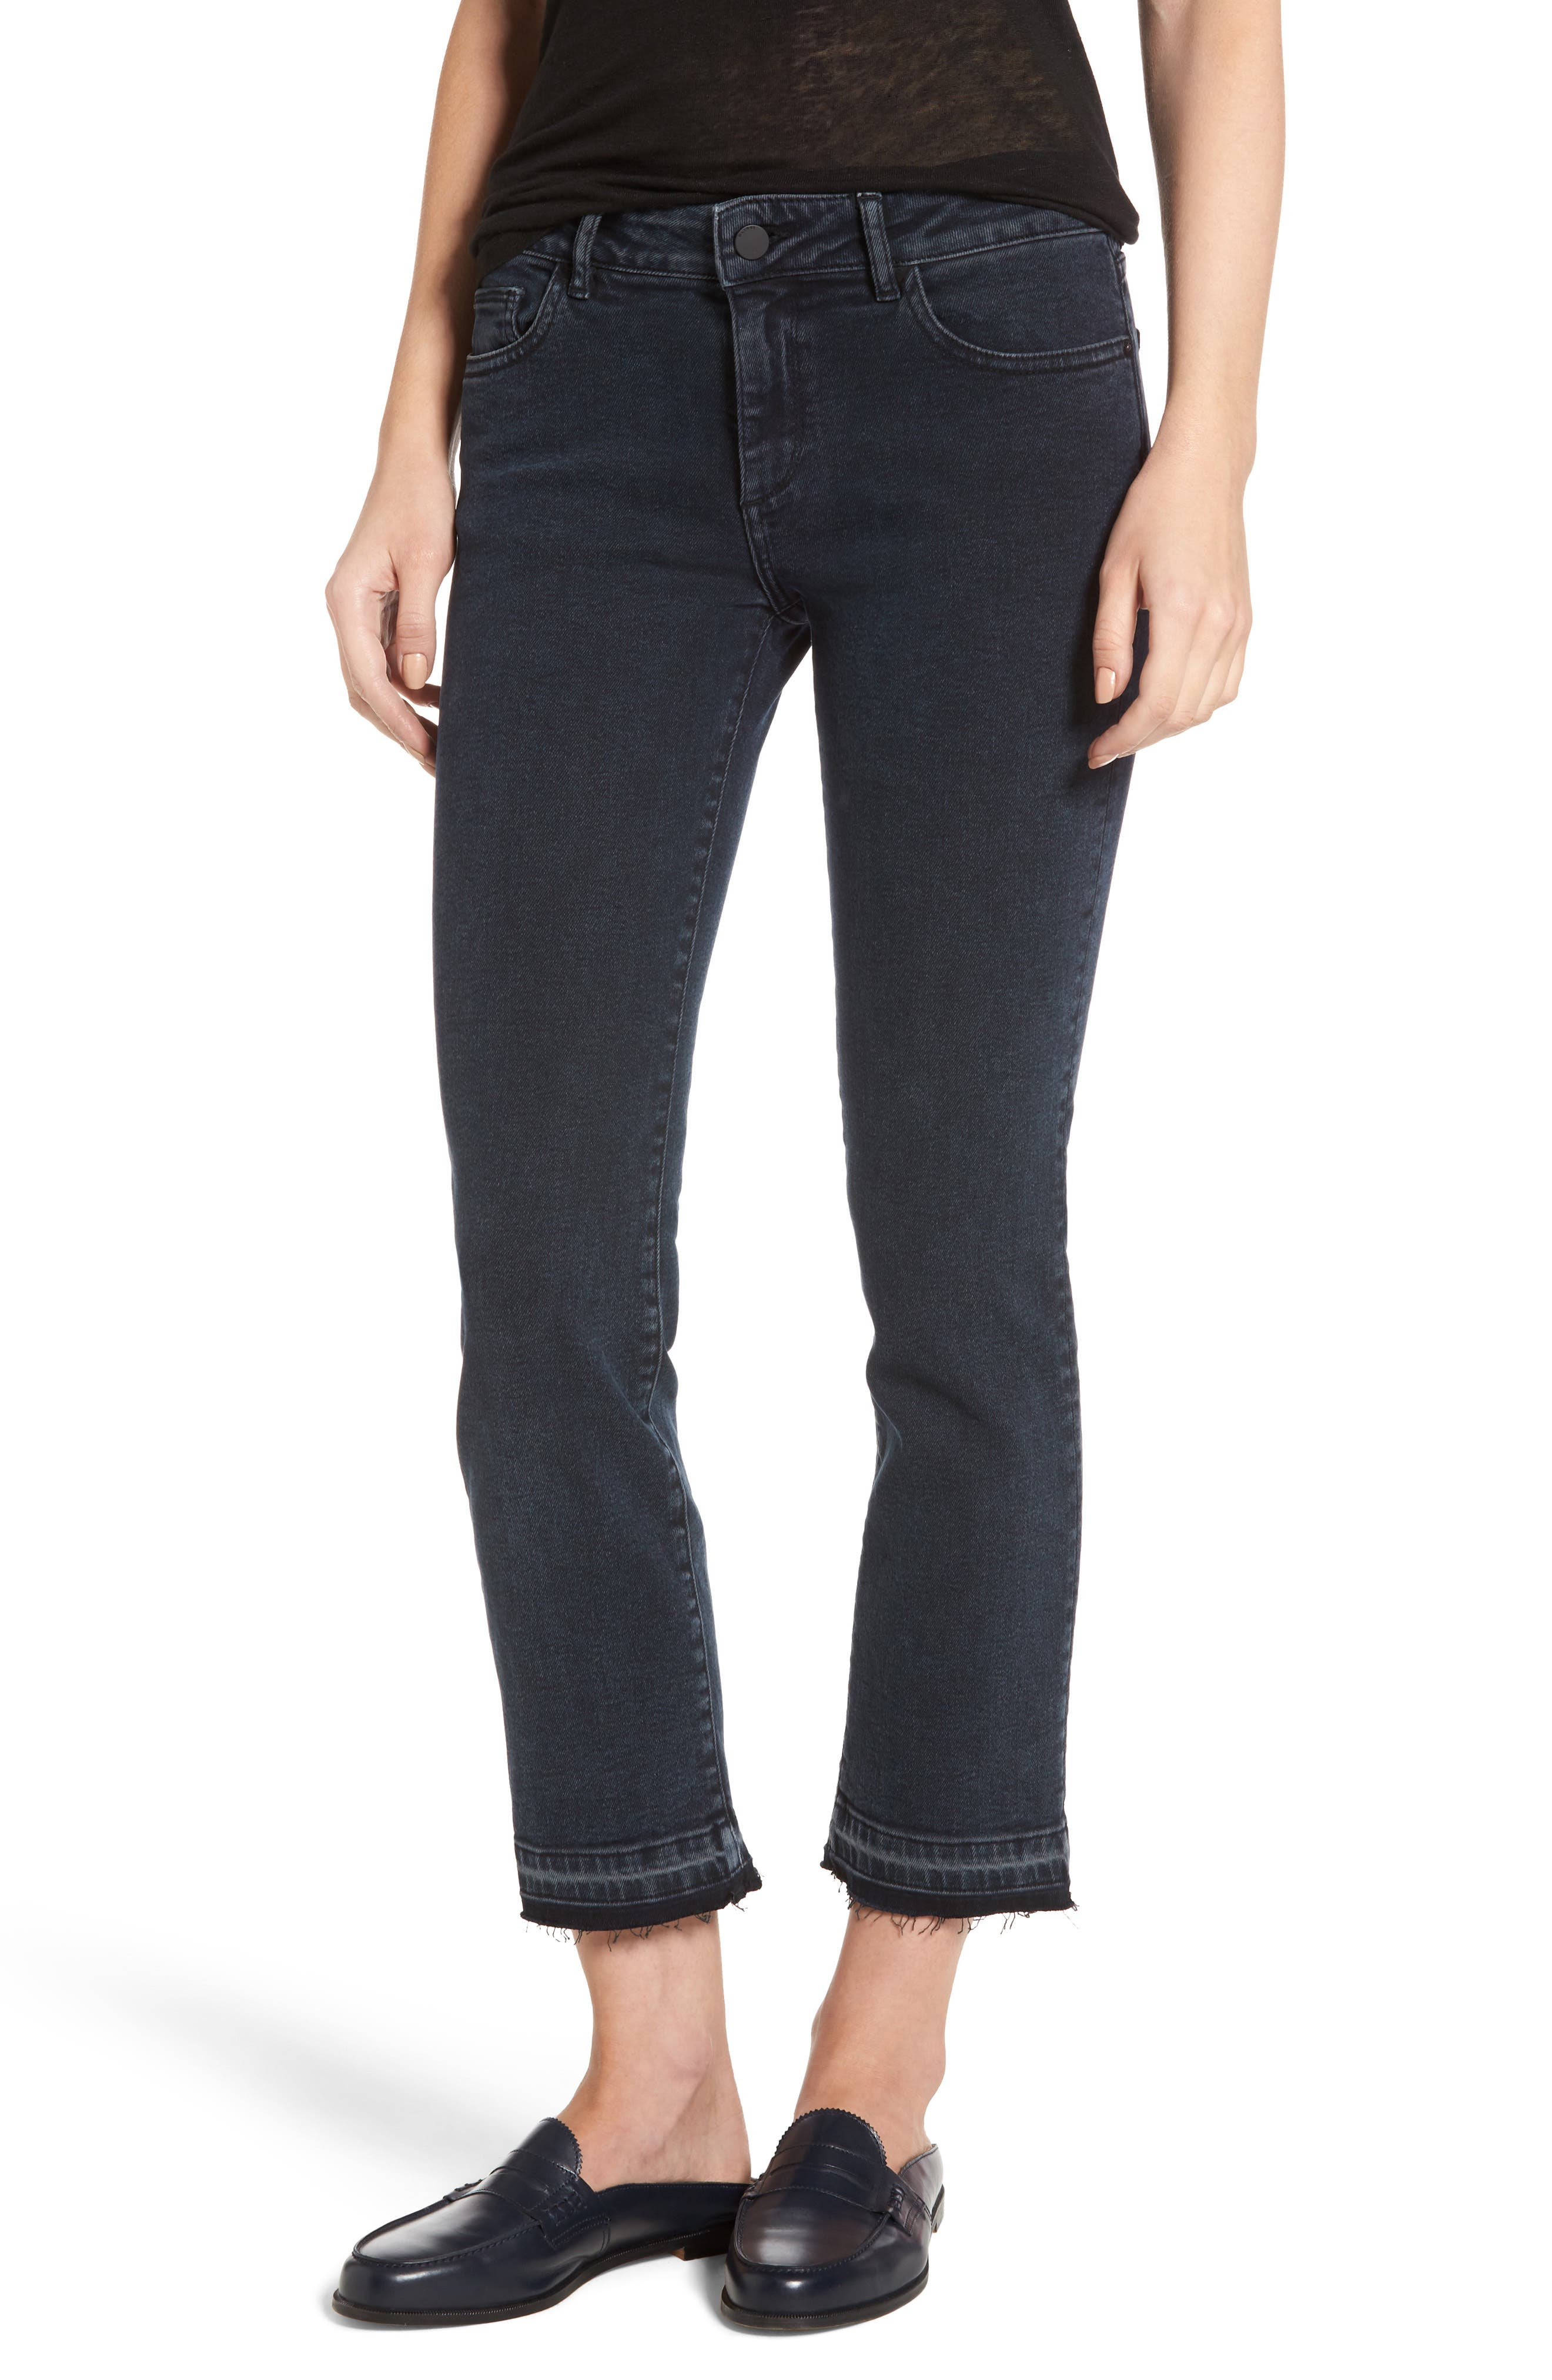 Alternate Image 1 Selected - DL1961 Mara Ankle Snap Straight Leg Jeans (Rye)